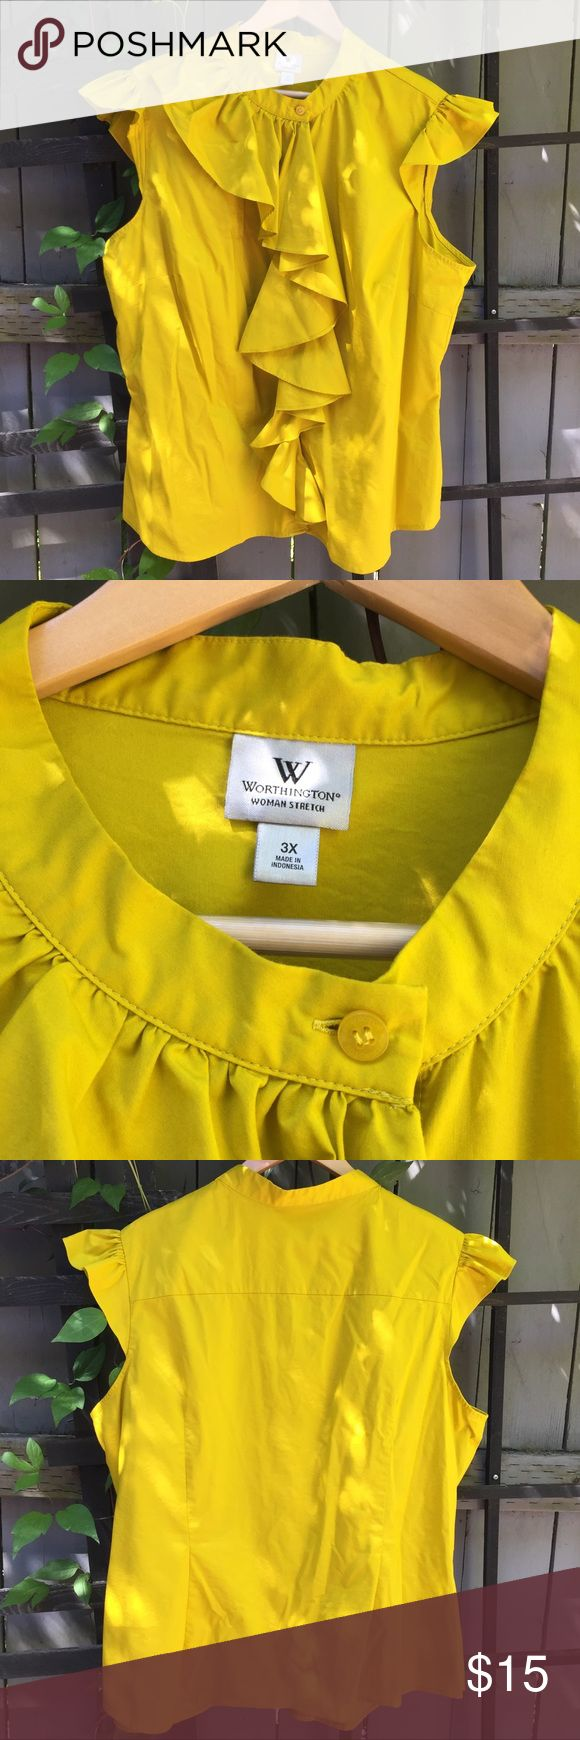 Yellow Worthington Plus Size 3XL Shirt For sale is a Worthington brand plus size sleeveless yellow shirt. This shirt is so beautiful and features lots of cute details like a mandarin collar, flutter shoulders, and an asymmetrical ruffle down the front. The fabric is a bright mustard yellow and is woven with a bit of stretch. From a nonsmoking home. It is in excellent condition. Worthington Tops Blouses